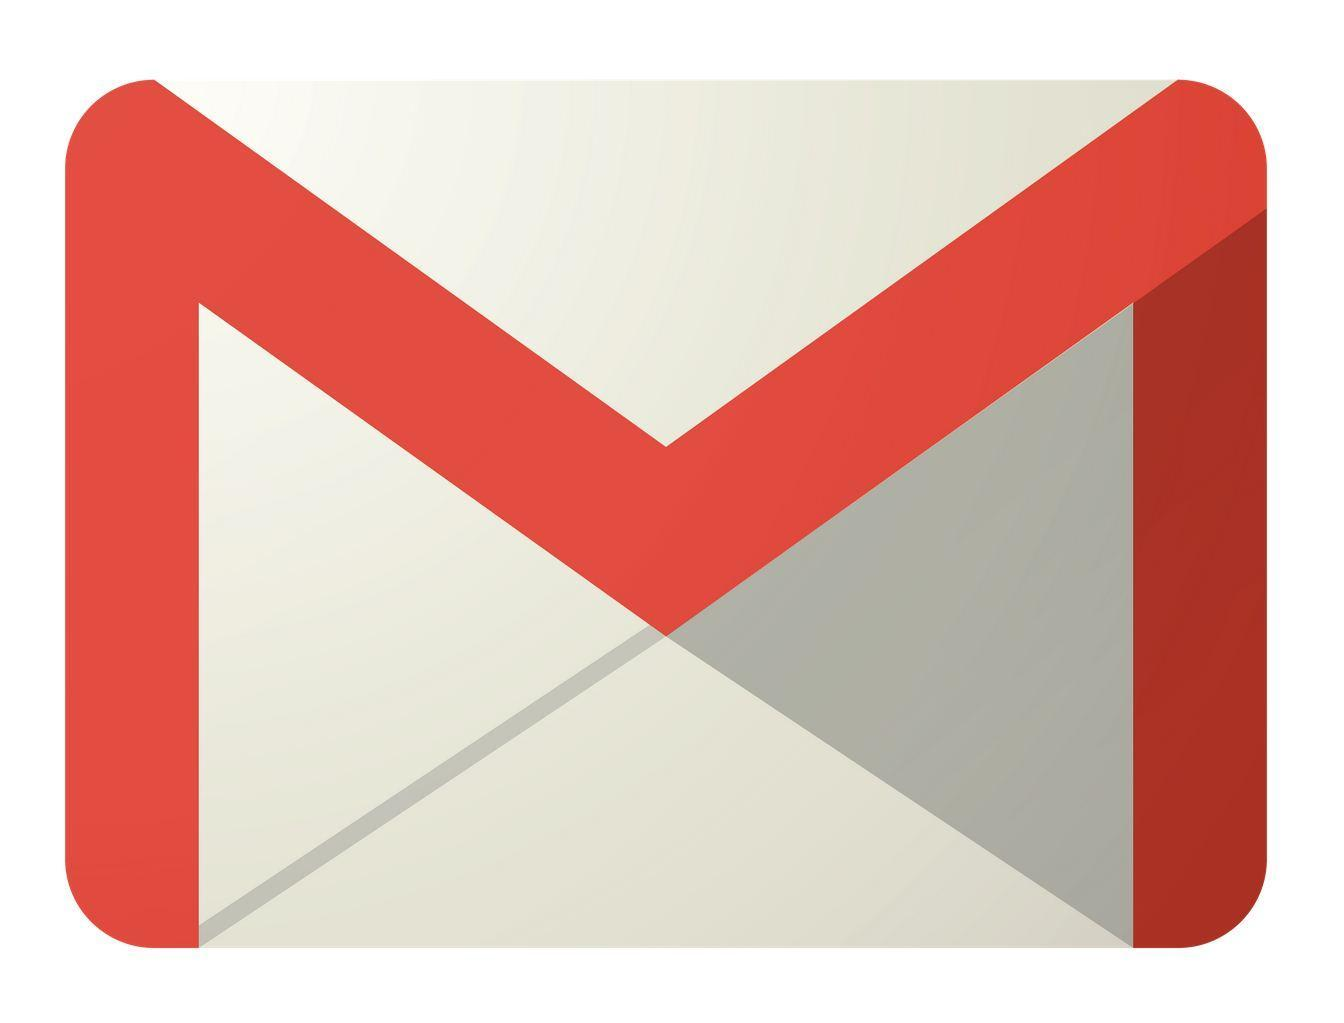 Gmail introduces SELF-DESTRUCTING emails as Google makes biggest upgrade for years